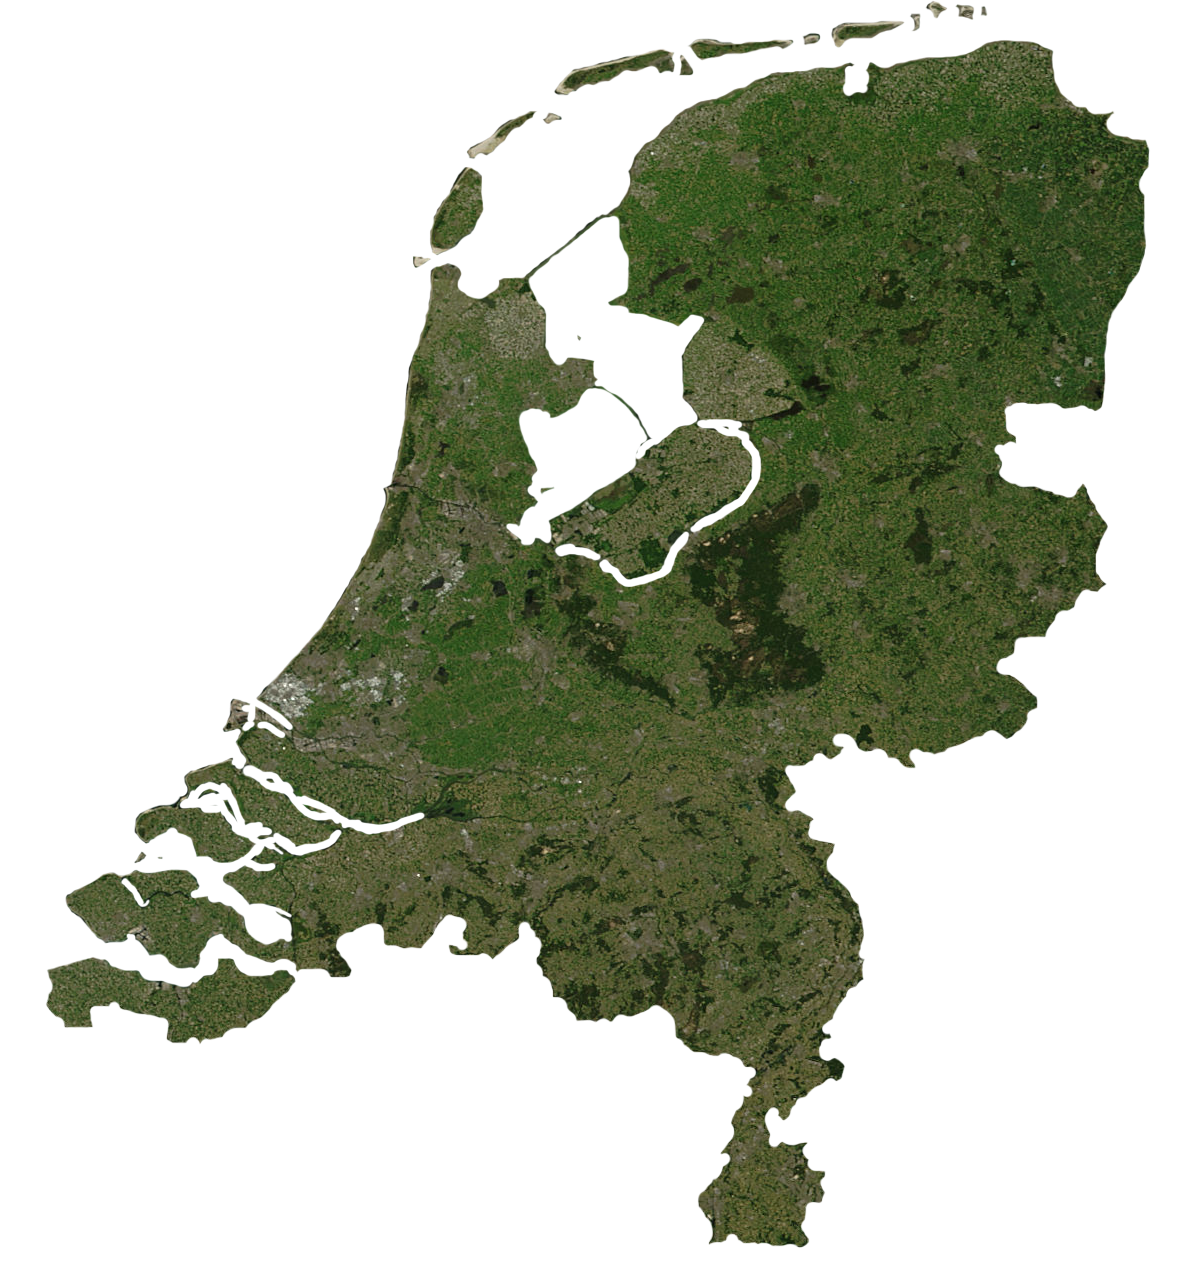 Satellite map of The Netherlands Satellite map